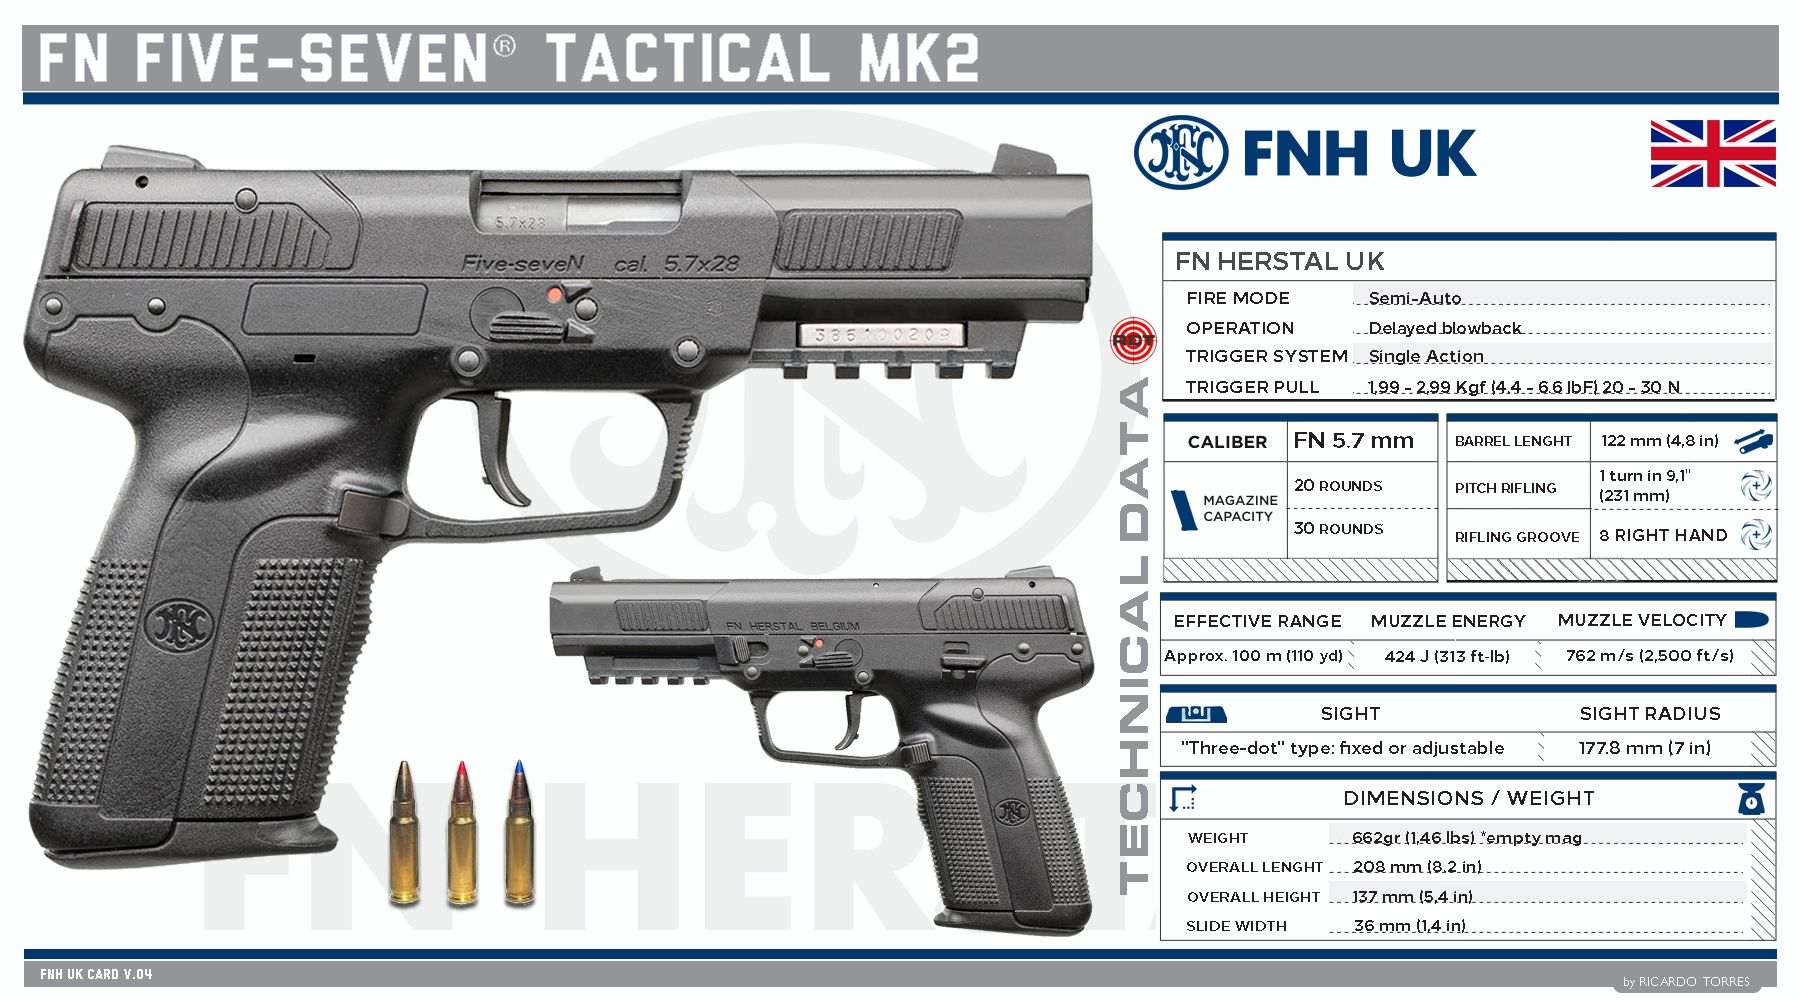 Fn Five Seven Tactical Mk2 Fn Five Seven Military Guns Guns Bullet